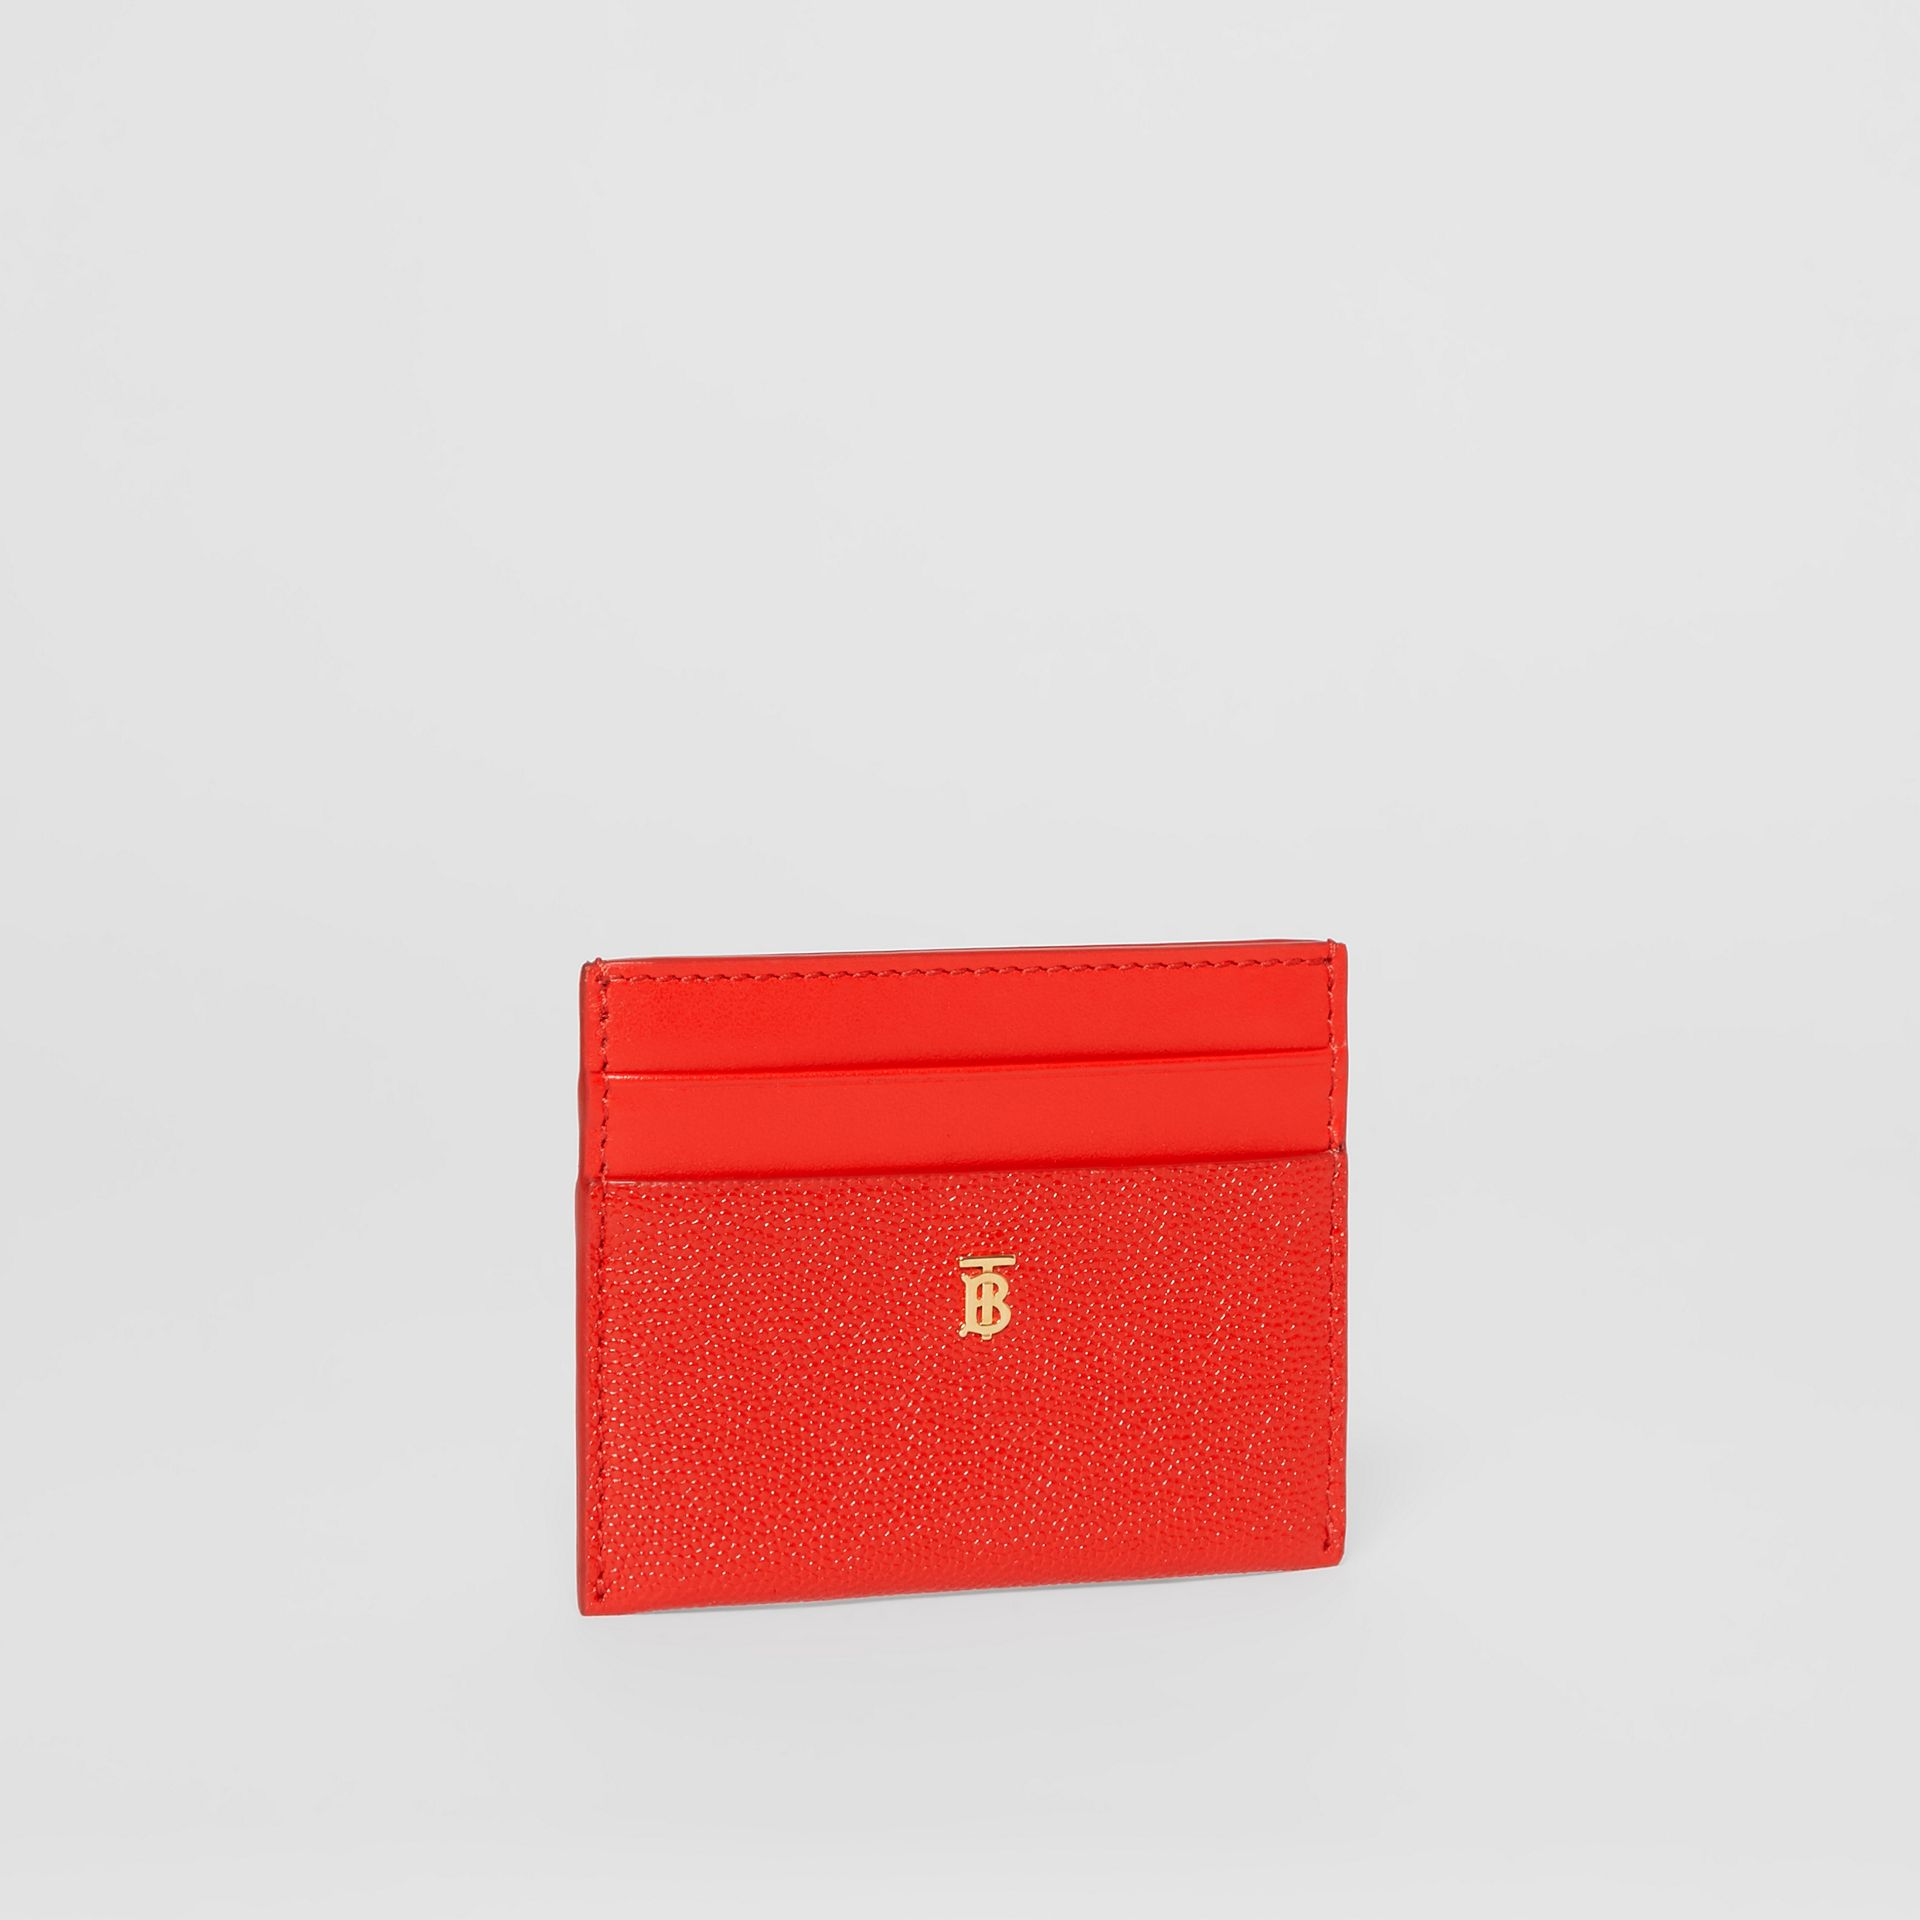 Monogram Motif Leather Card Case in Bright Red - Women | Burberry Australia - gallery image 3